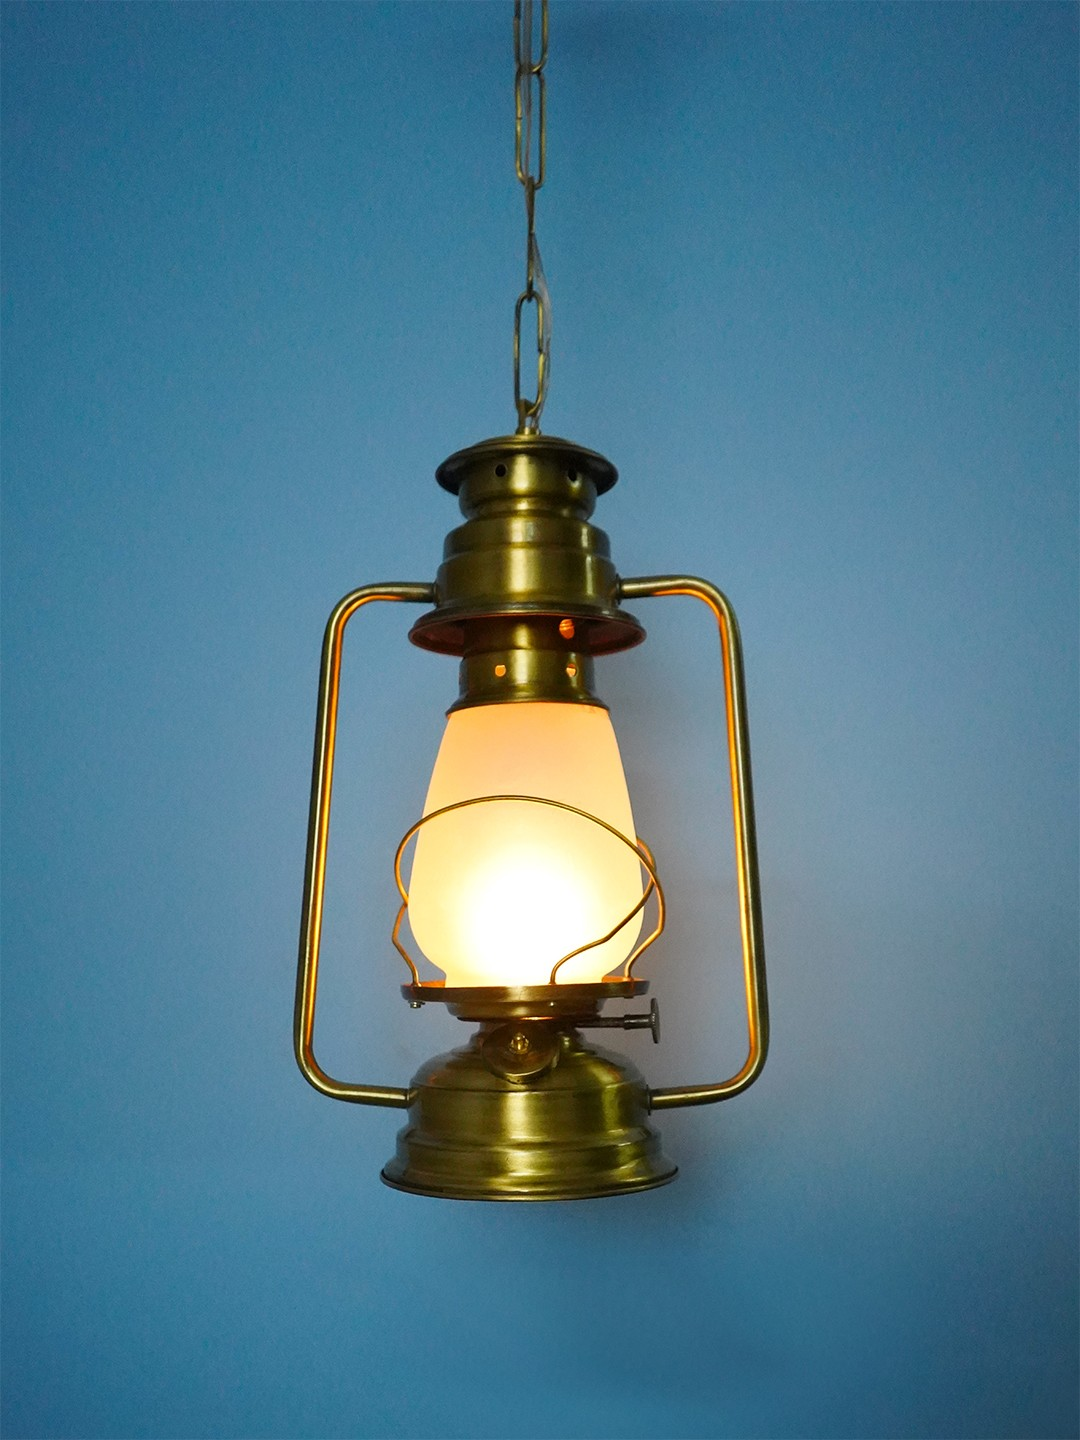 Vintage Brass Lantern Hanging Light